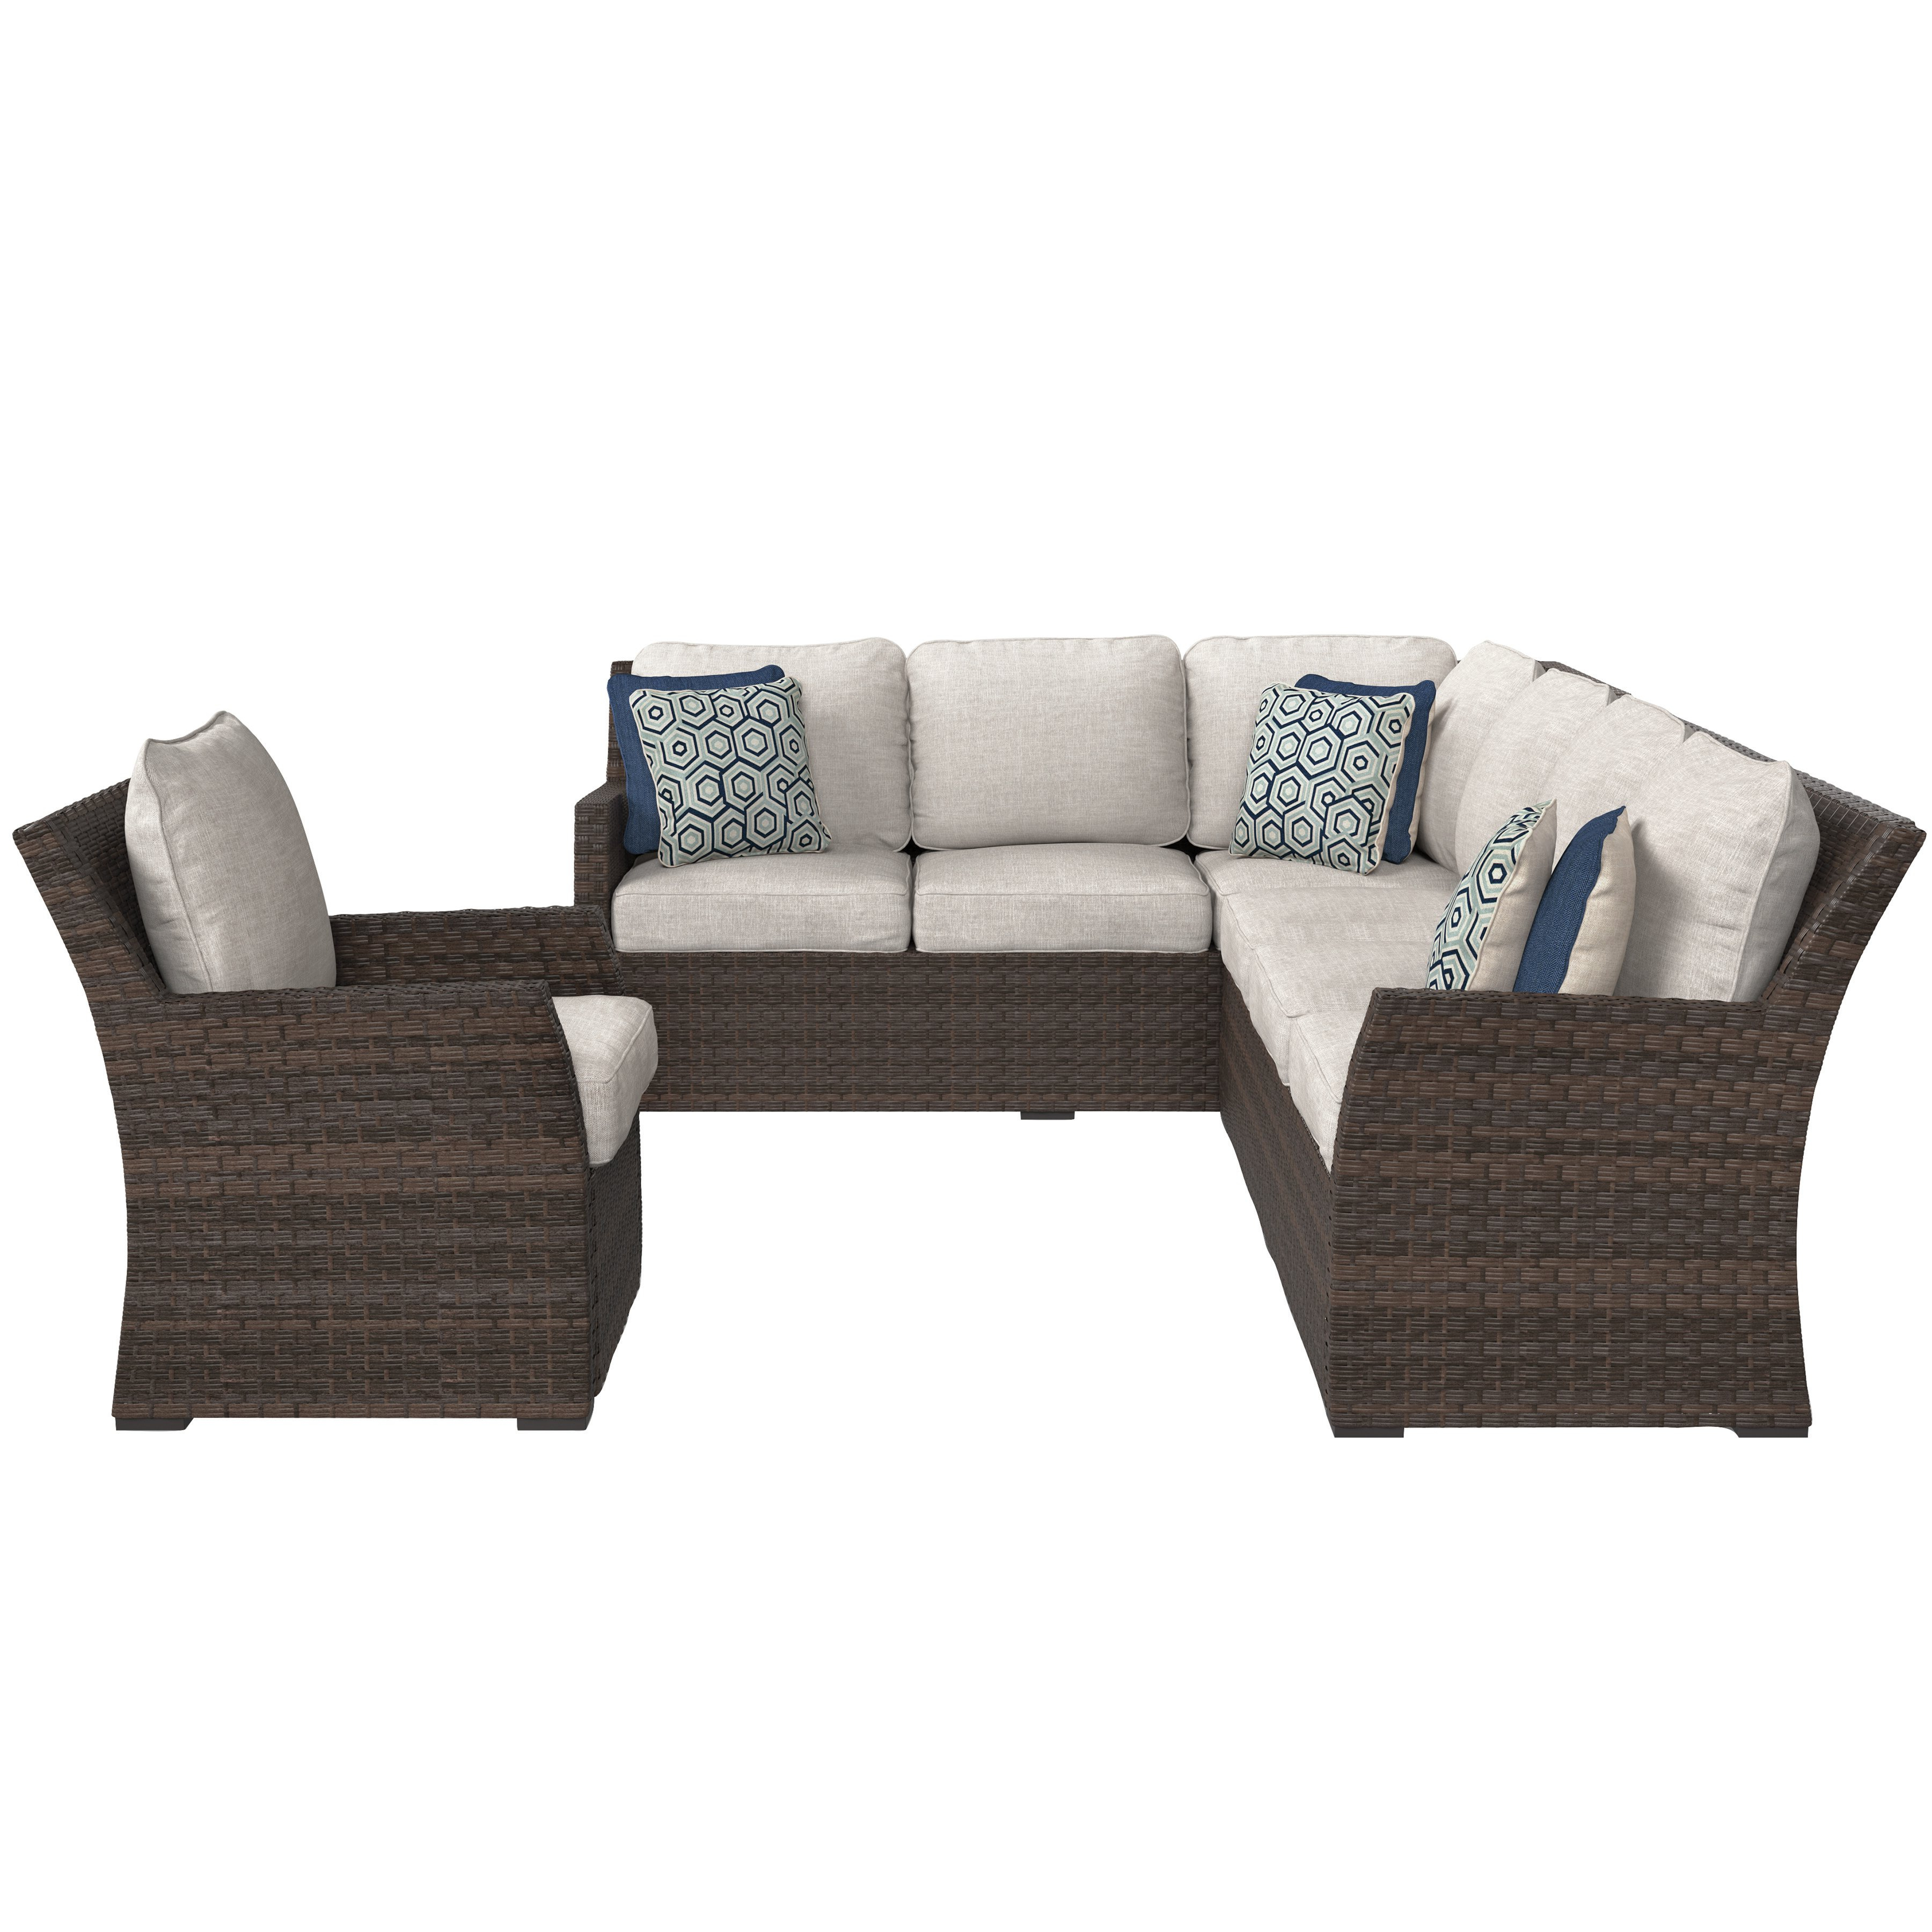 Hursey Patio Sofas In Well Known Adele Patio Sectional With Cushions (View 9 of 20)